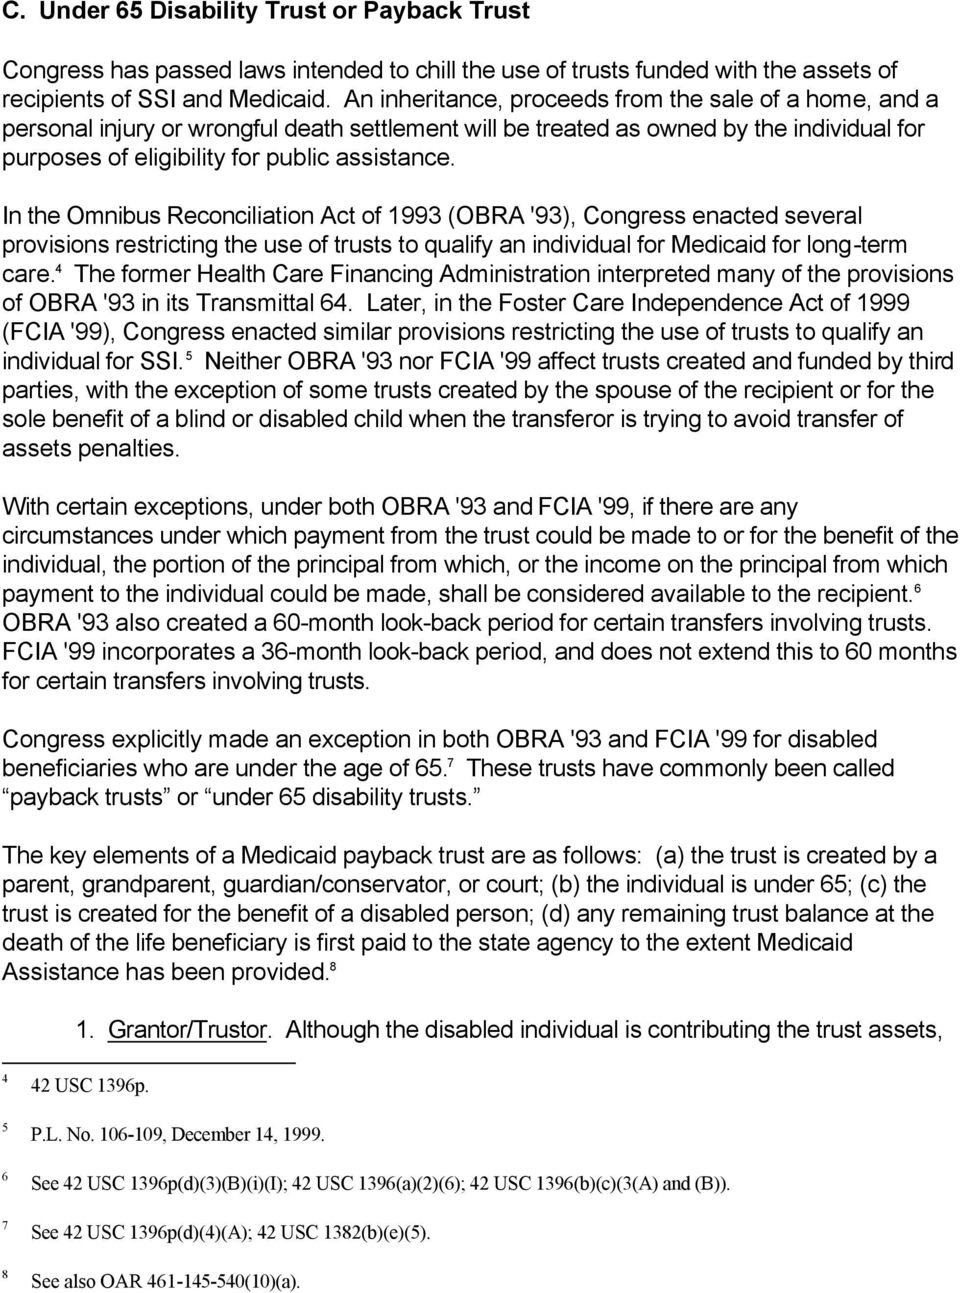 In the Omnibus Reconciliation Act of 1993 (OBRA '93), Congress enacted several provisions restricting the use of trusts to qualify an individual for Medicaid for long-term care.